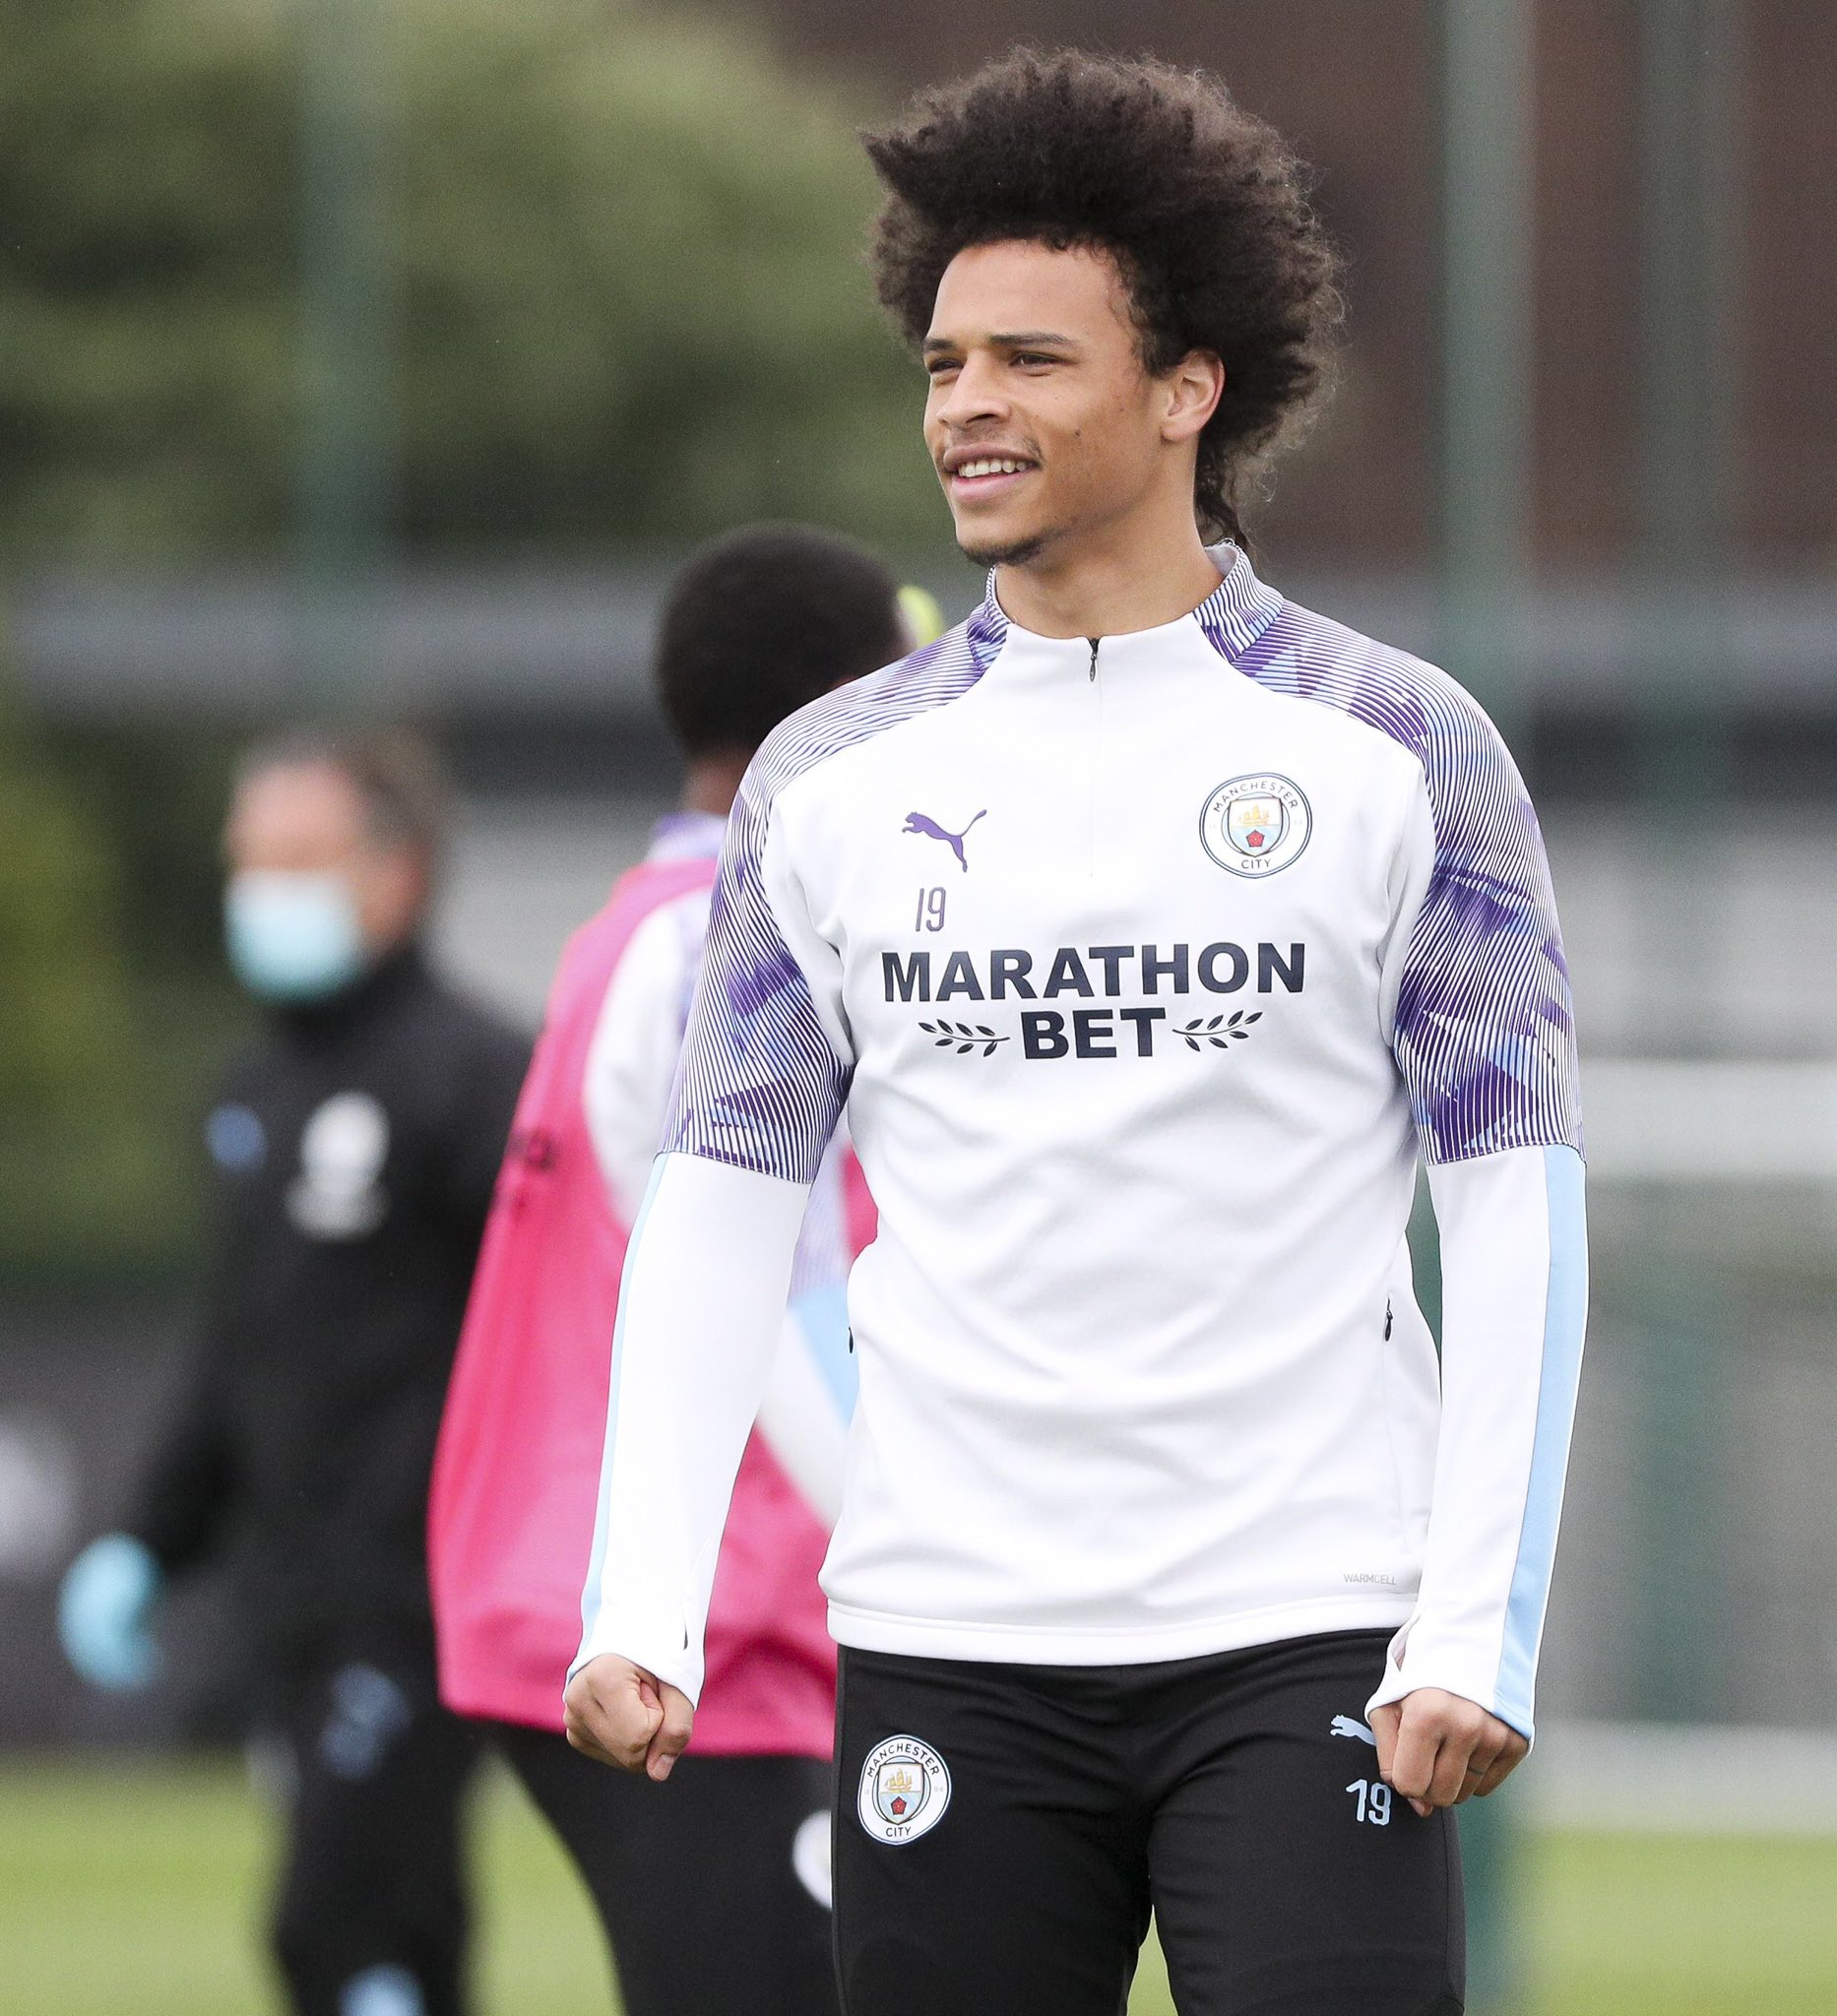 Leroy Sane: Man City winger wants to leave, says Pep Guardiola